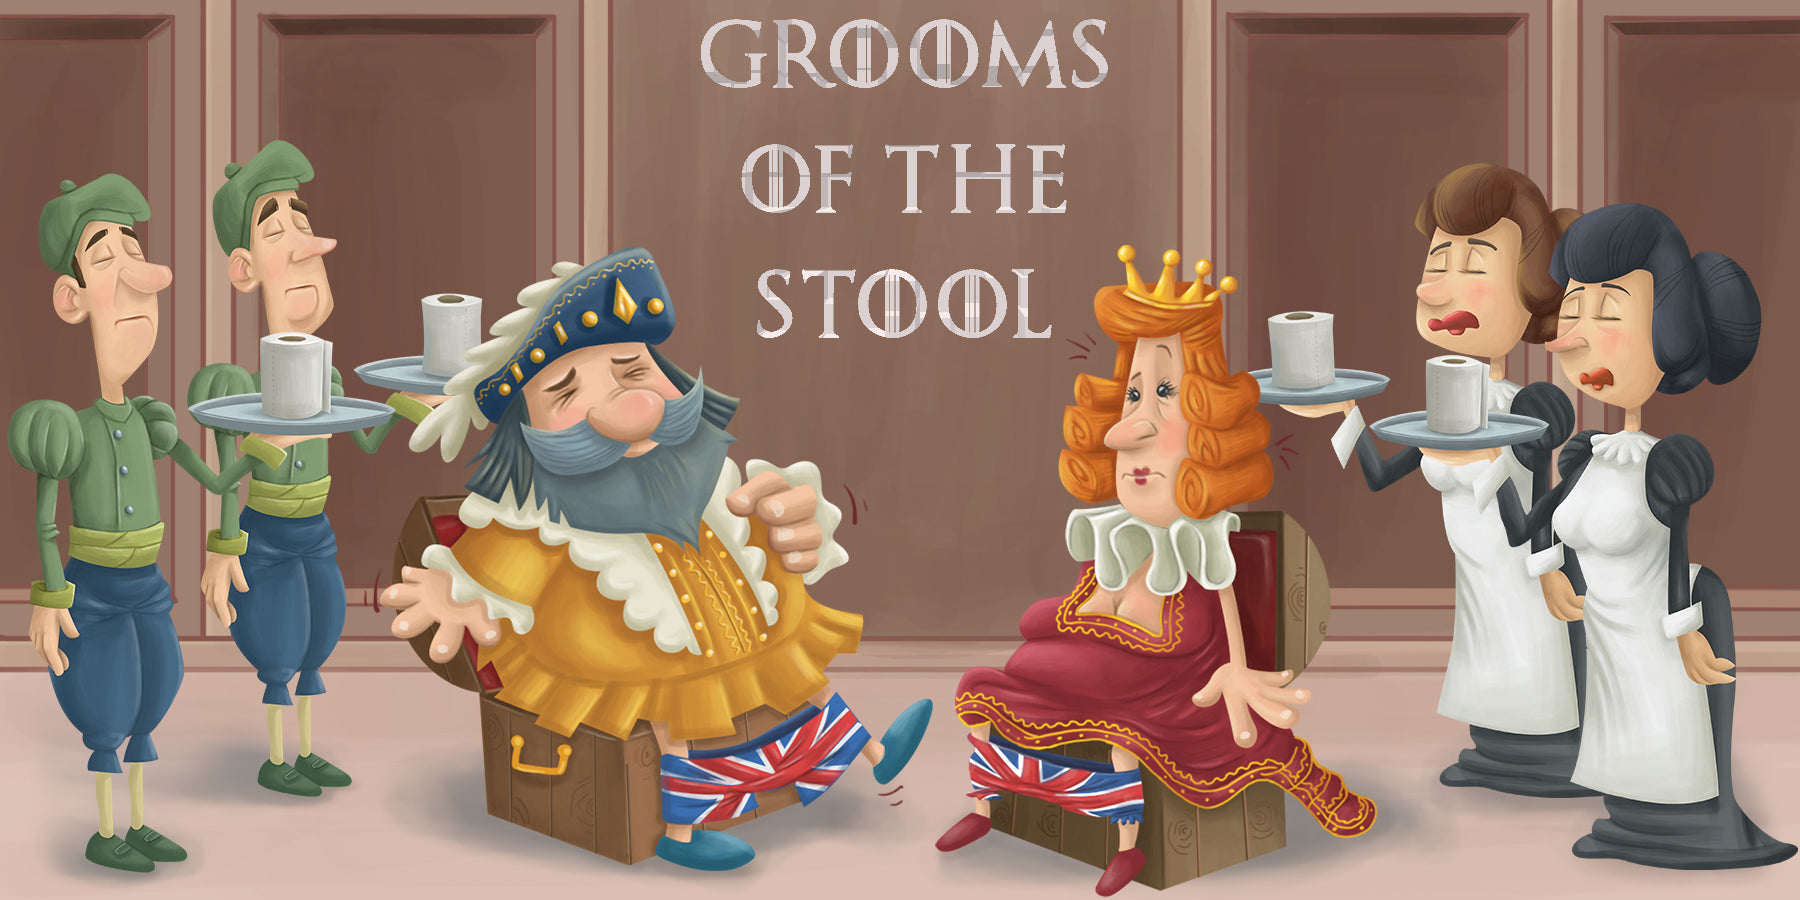 Grooms of the stool serving toilet paper to king and queen who symbolise Uranus Wiper customers